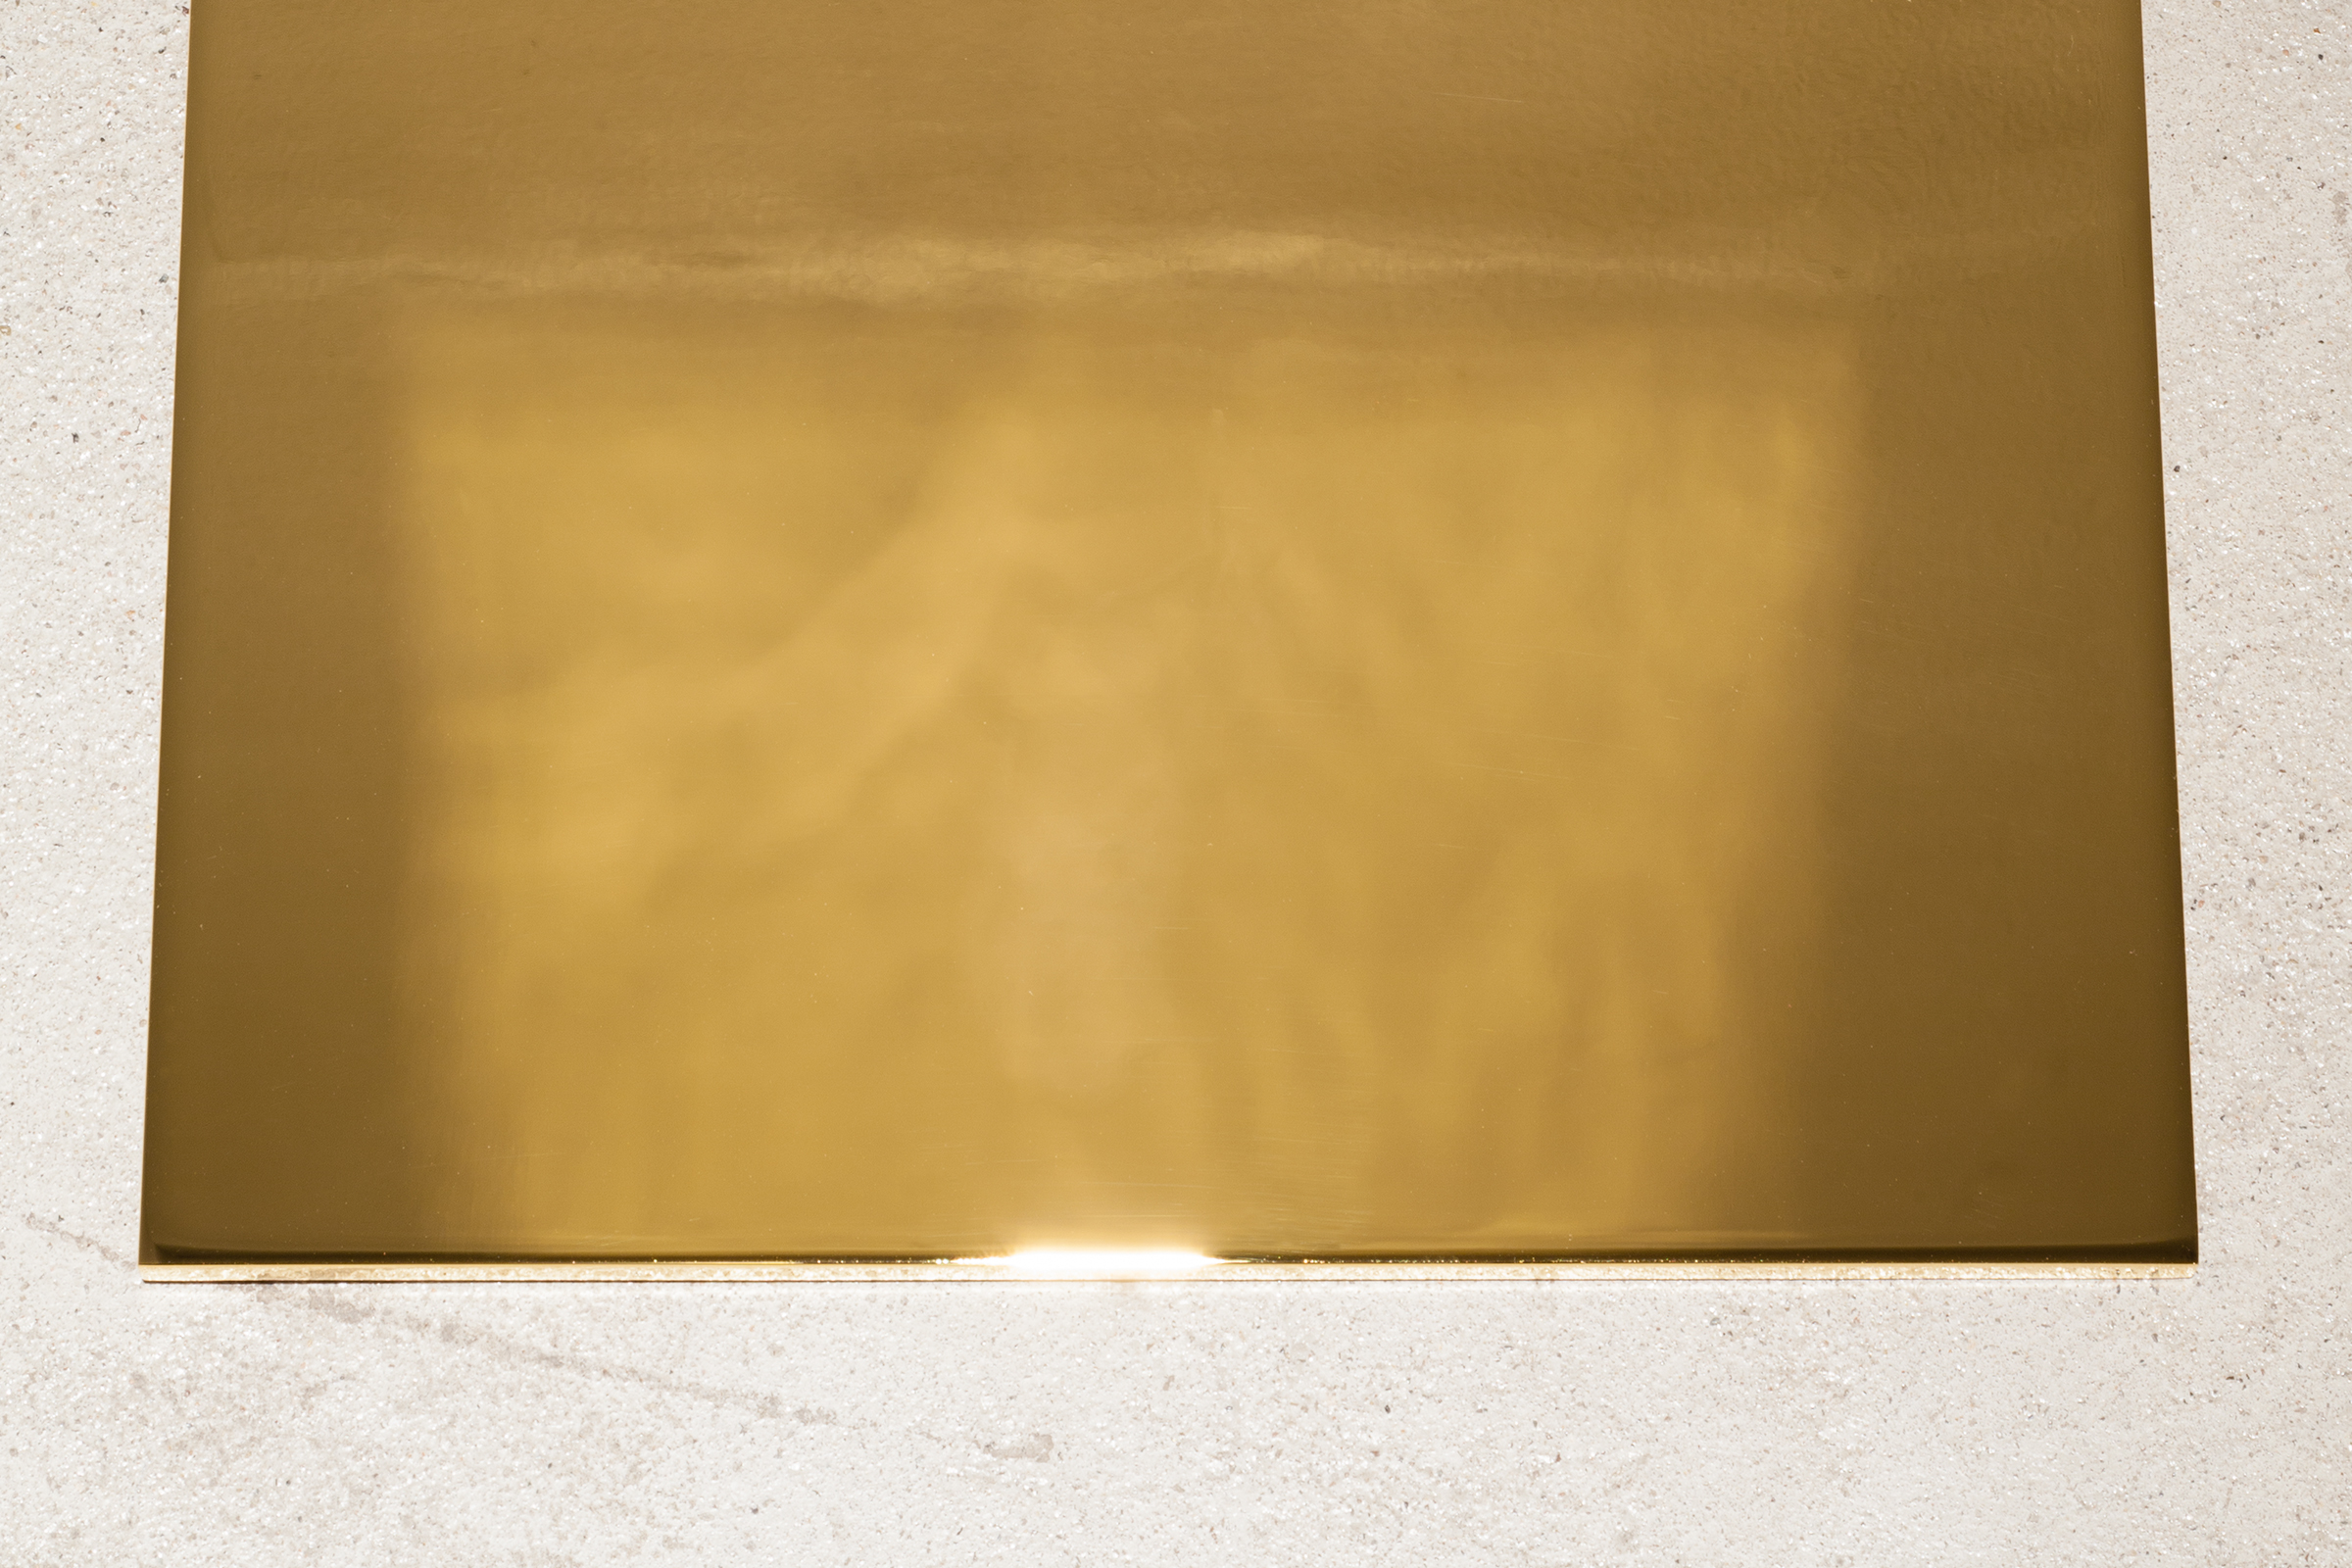 Lazaros,  A paved work of pure gold  (detail), 2012-2015, aerospace grade aluminum plated with 99.999% pure gold, 0.375 x 12 x 12 in